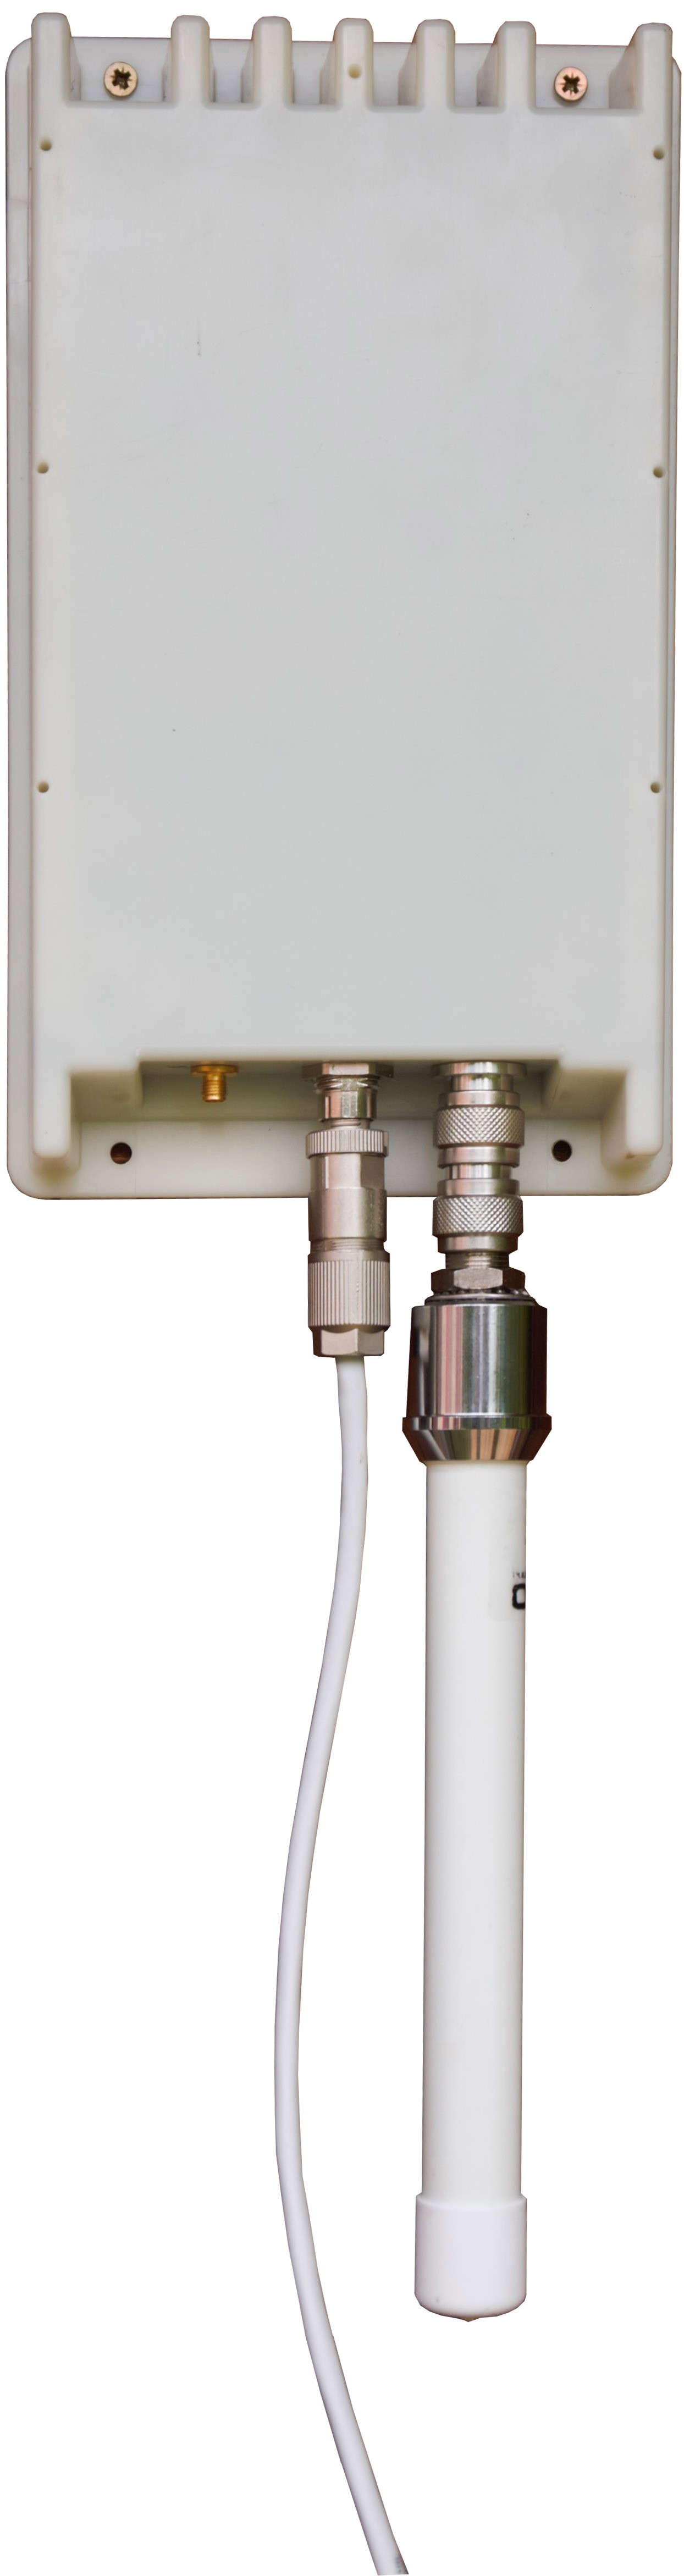 LoRa Outdoor FlexGate™